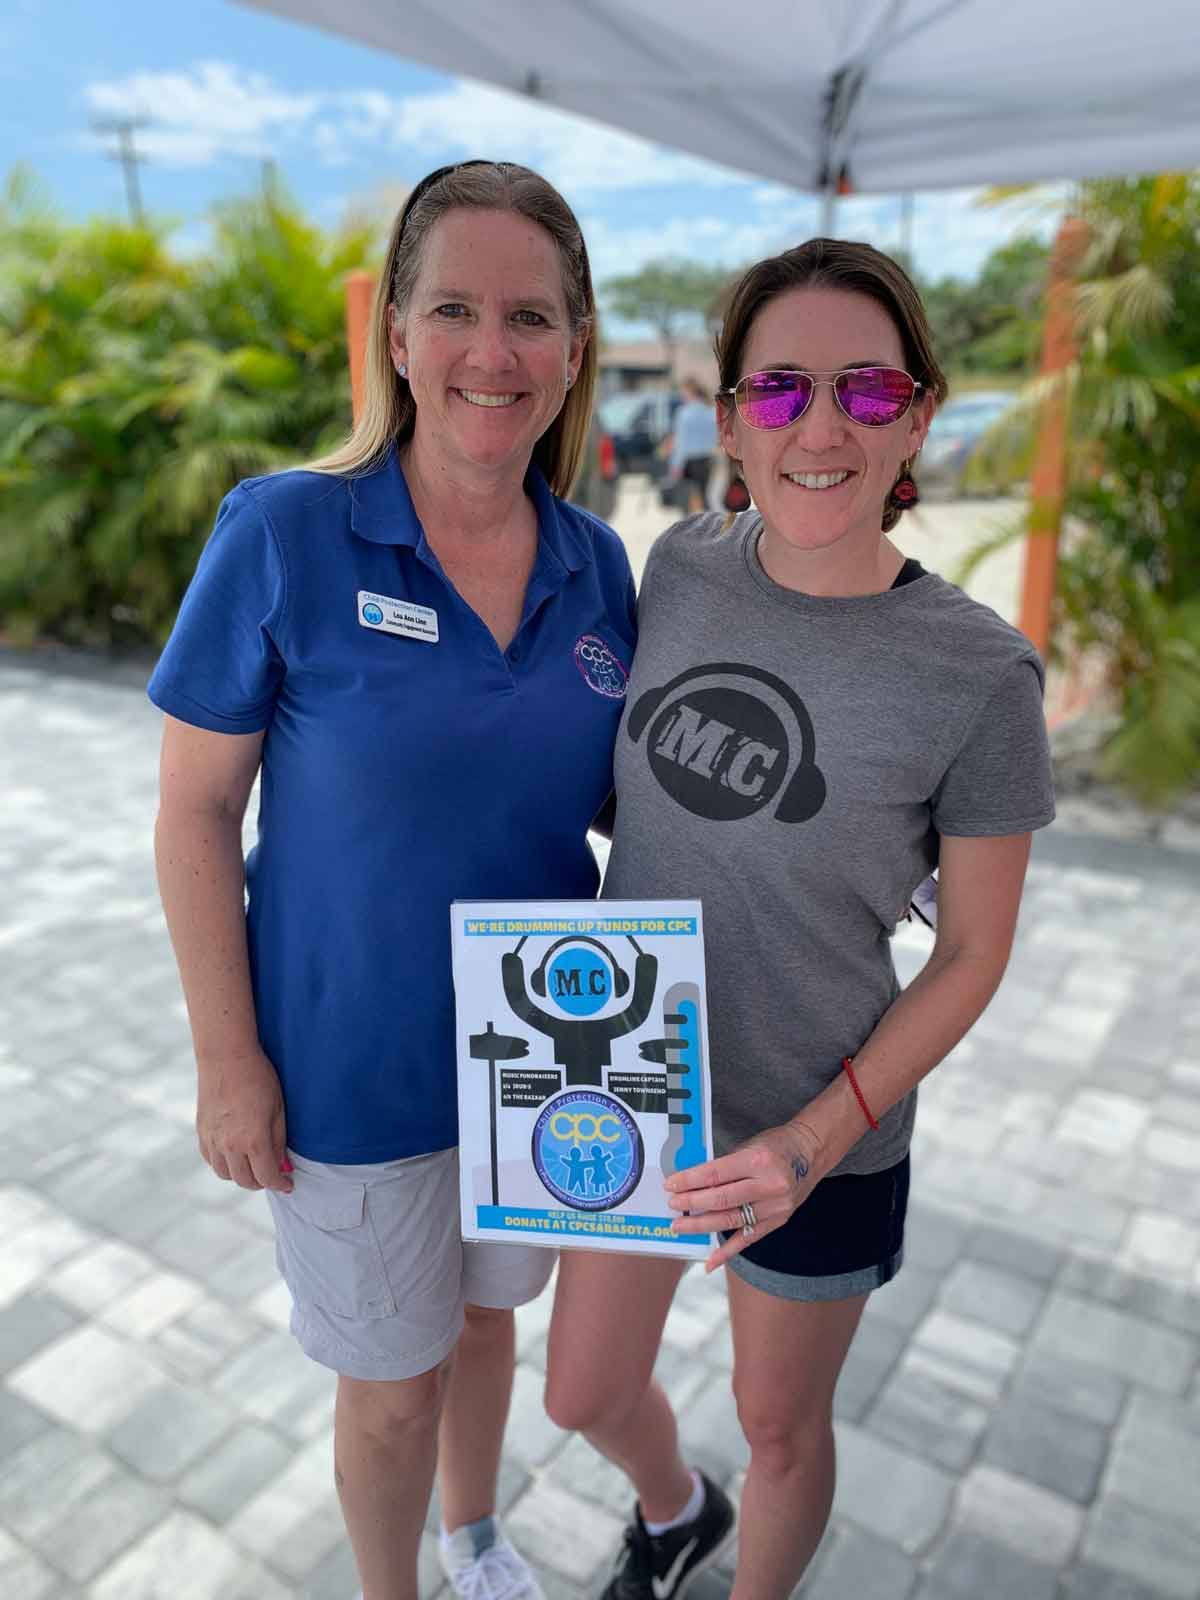 Summer Fest Raises nearly $1,000 for Child Protection Services